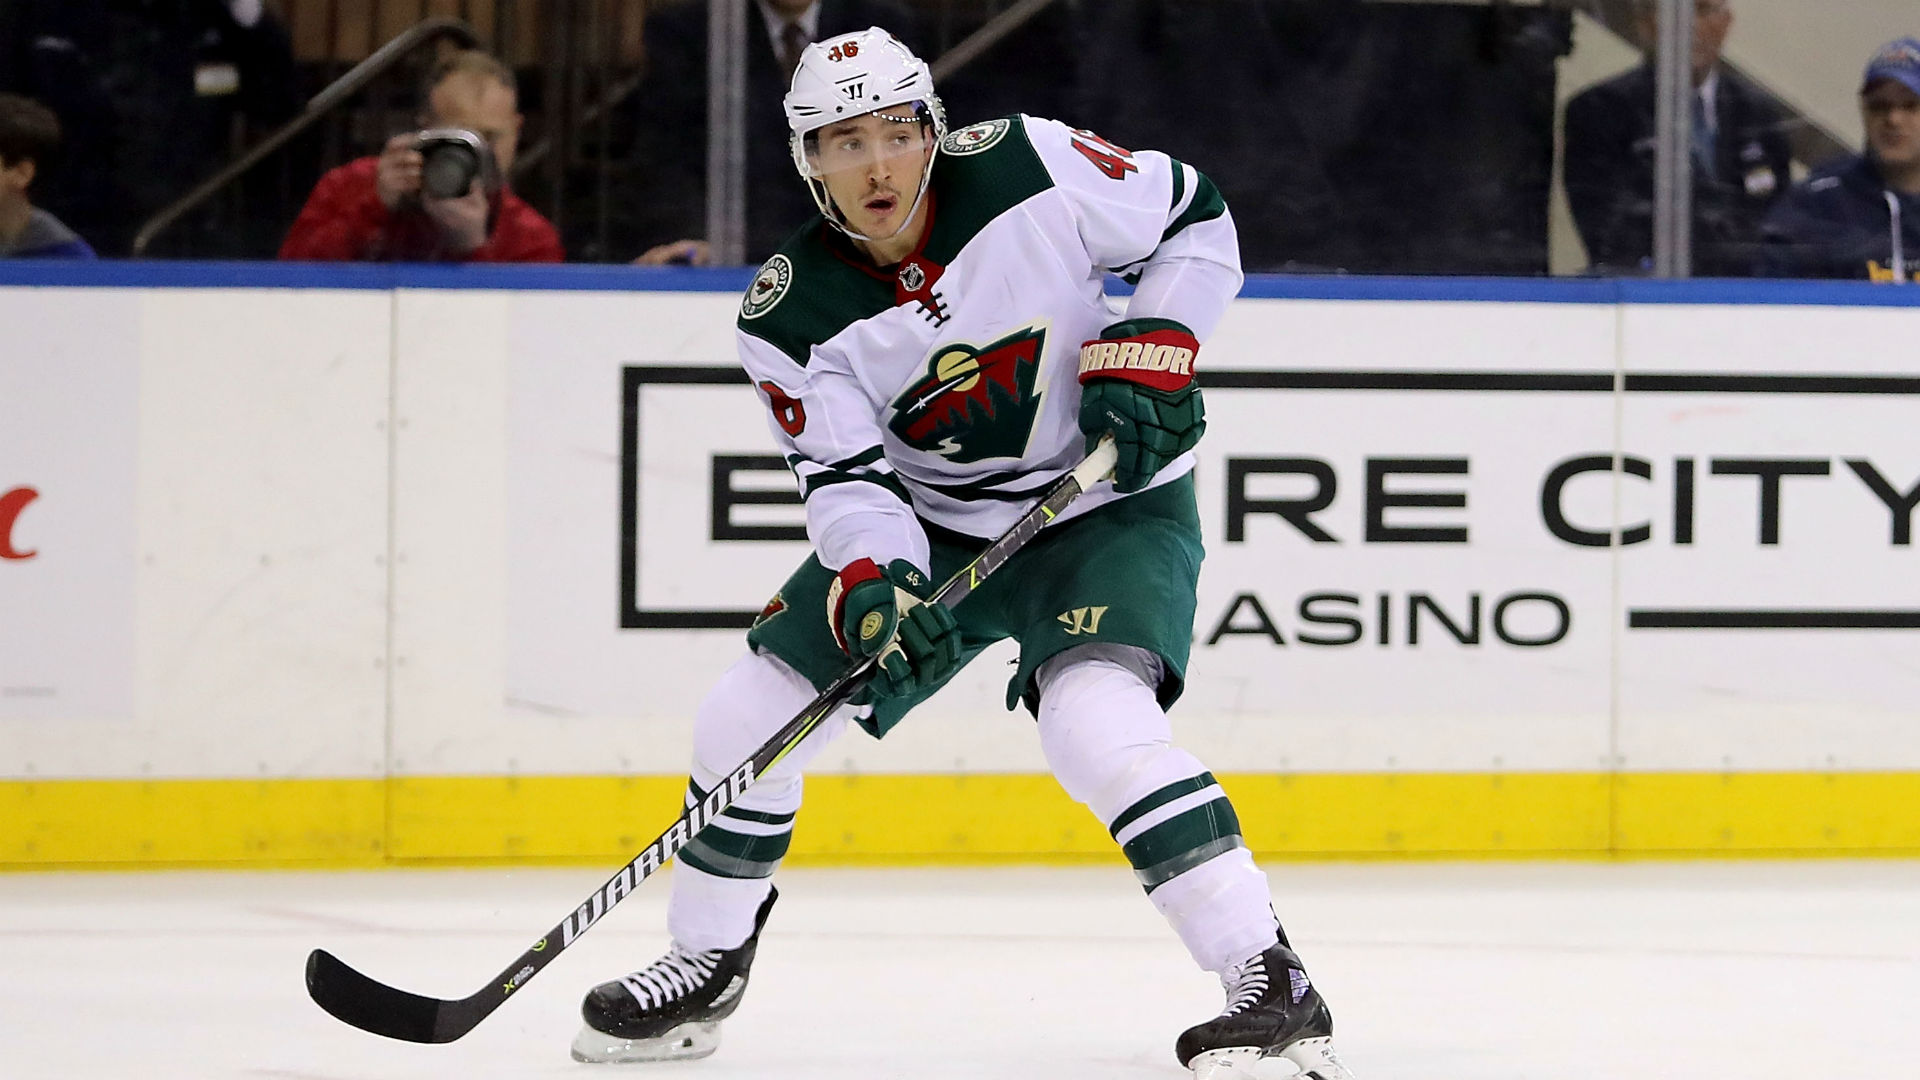 Defenseman Jared Spurgeon signs 7-year contract extension with Wild